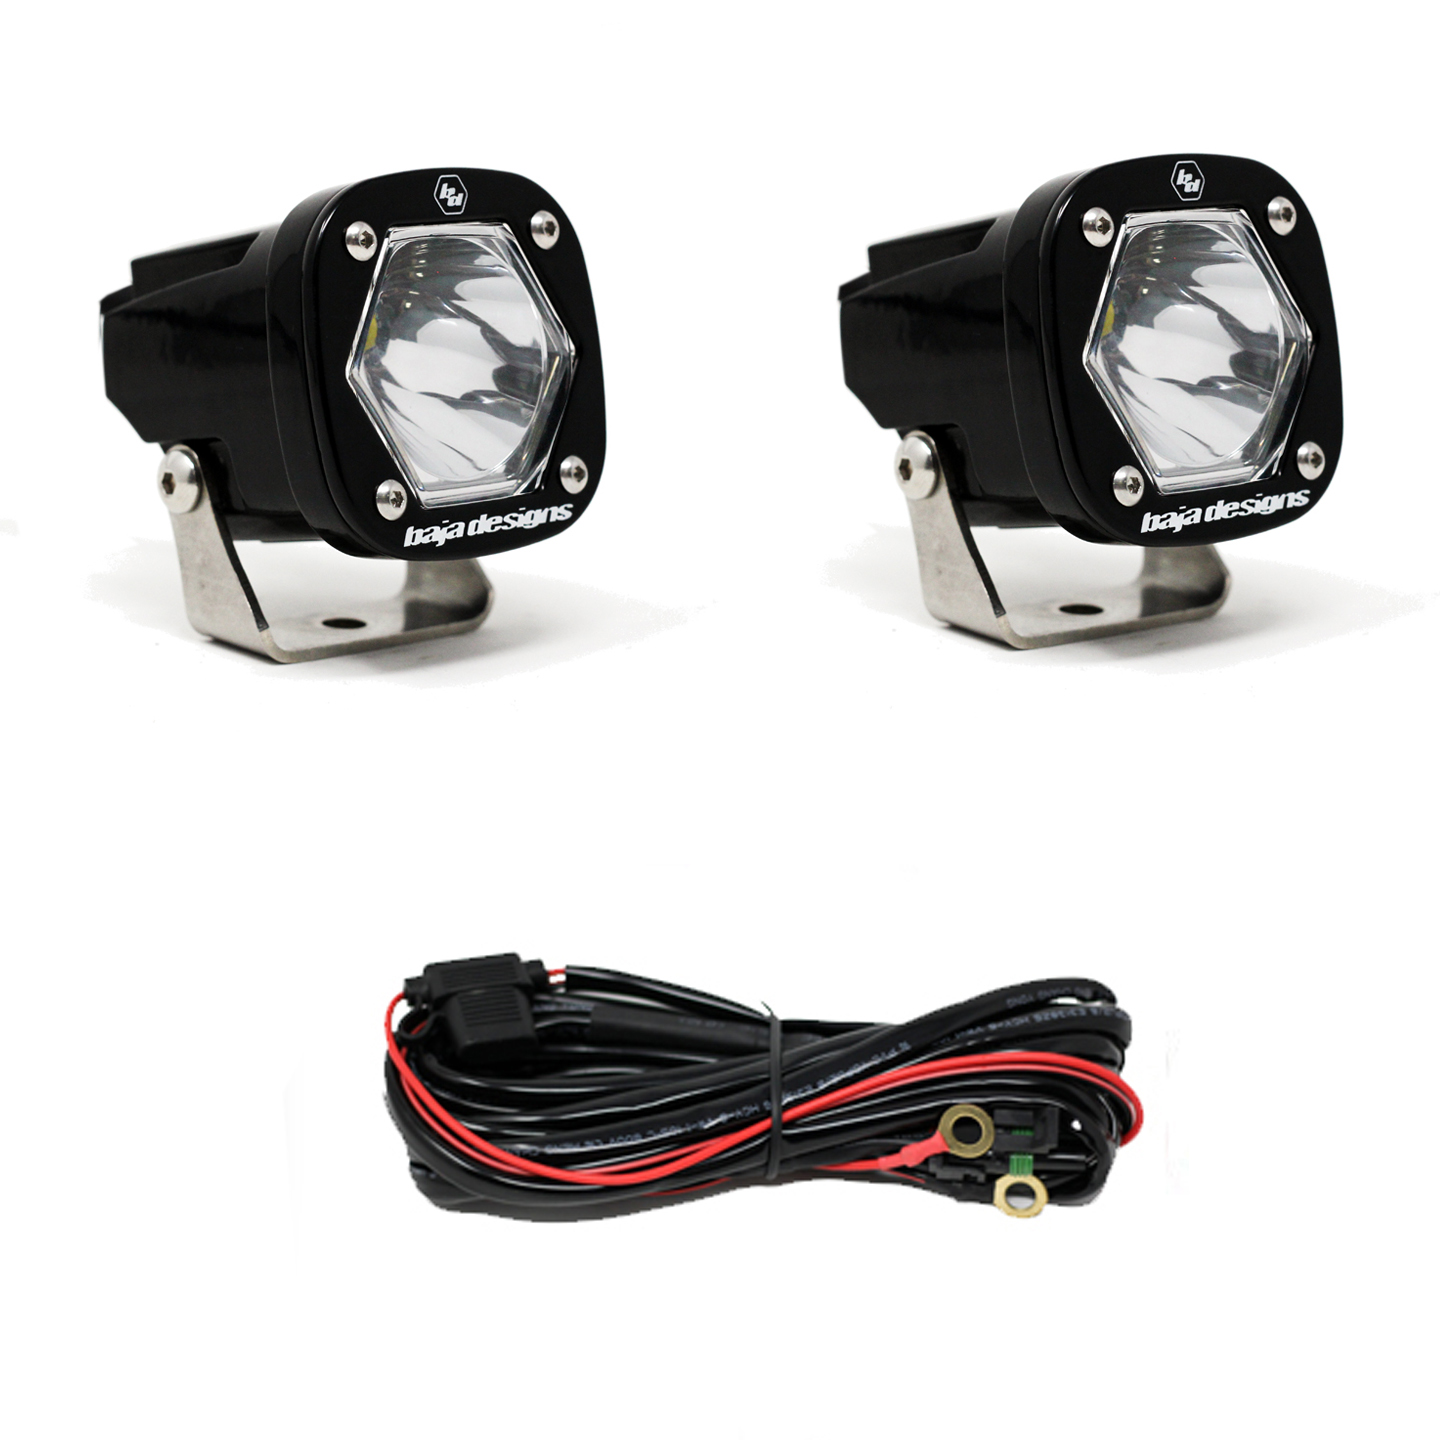 S1 Spot LED Light with Mounting Bracket Pair Baja Designs